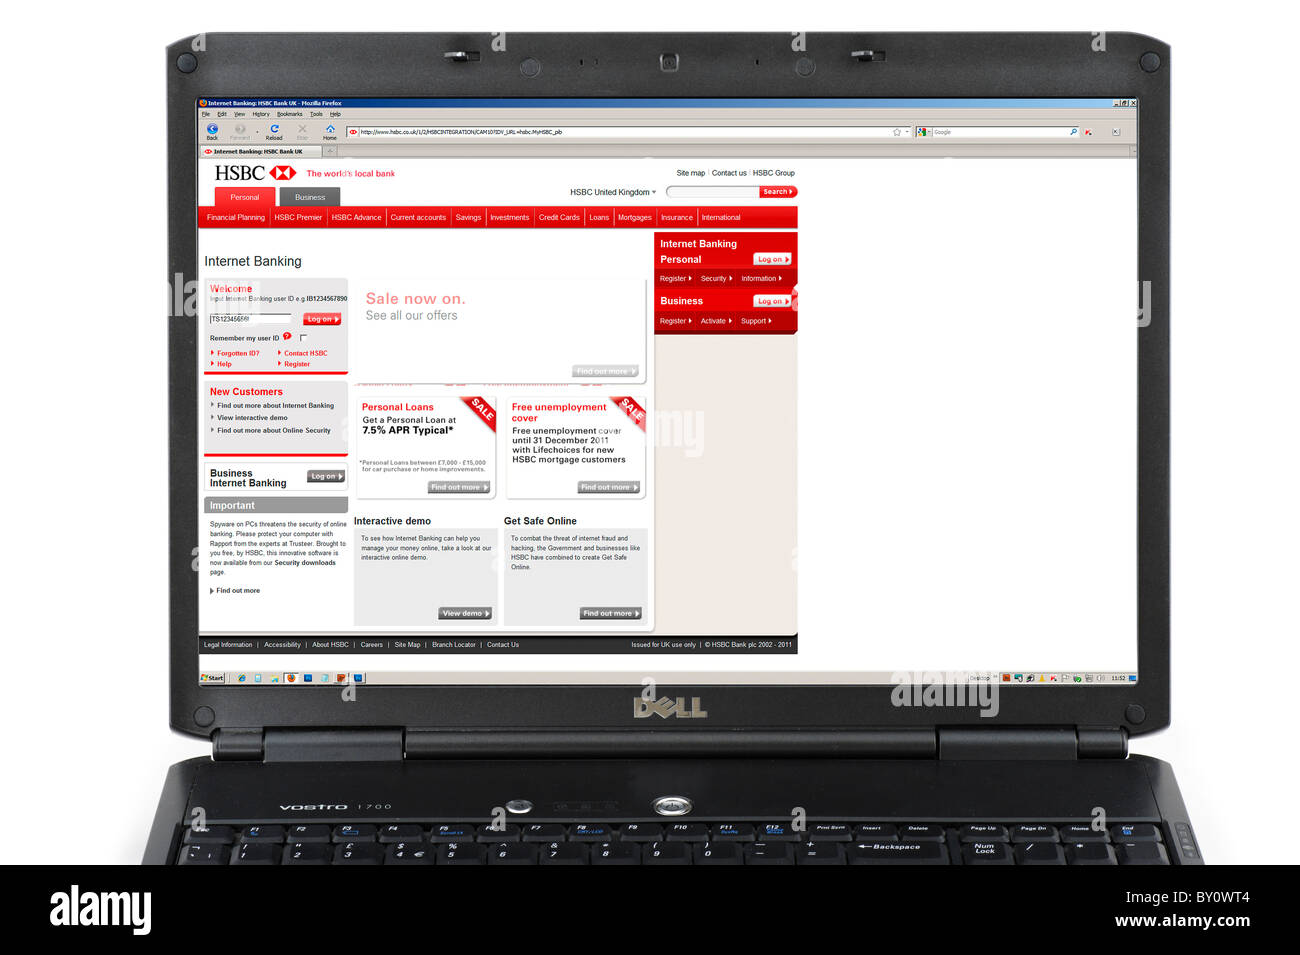 Logging on to hsbc online banking uk stock photo 33826356 alamy logging on to hsbc online banking uk reheart Gallery